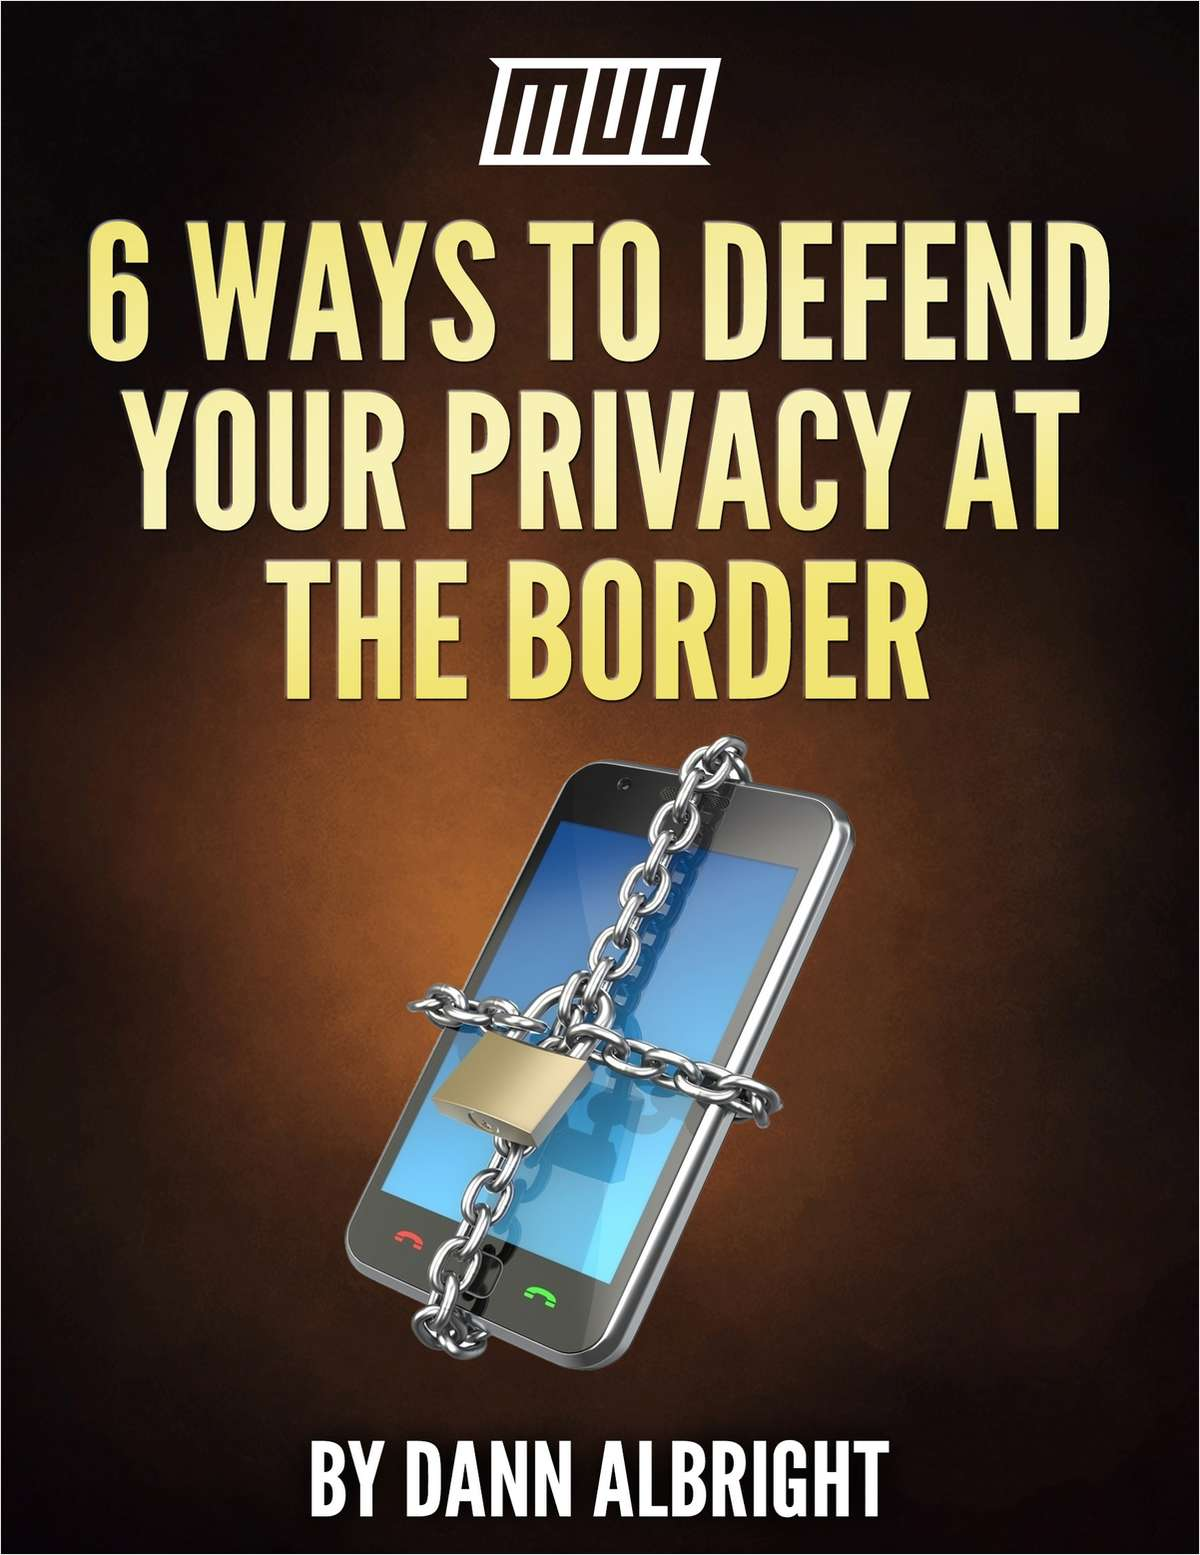 6 Ways to Defend Your Privacy at the Border